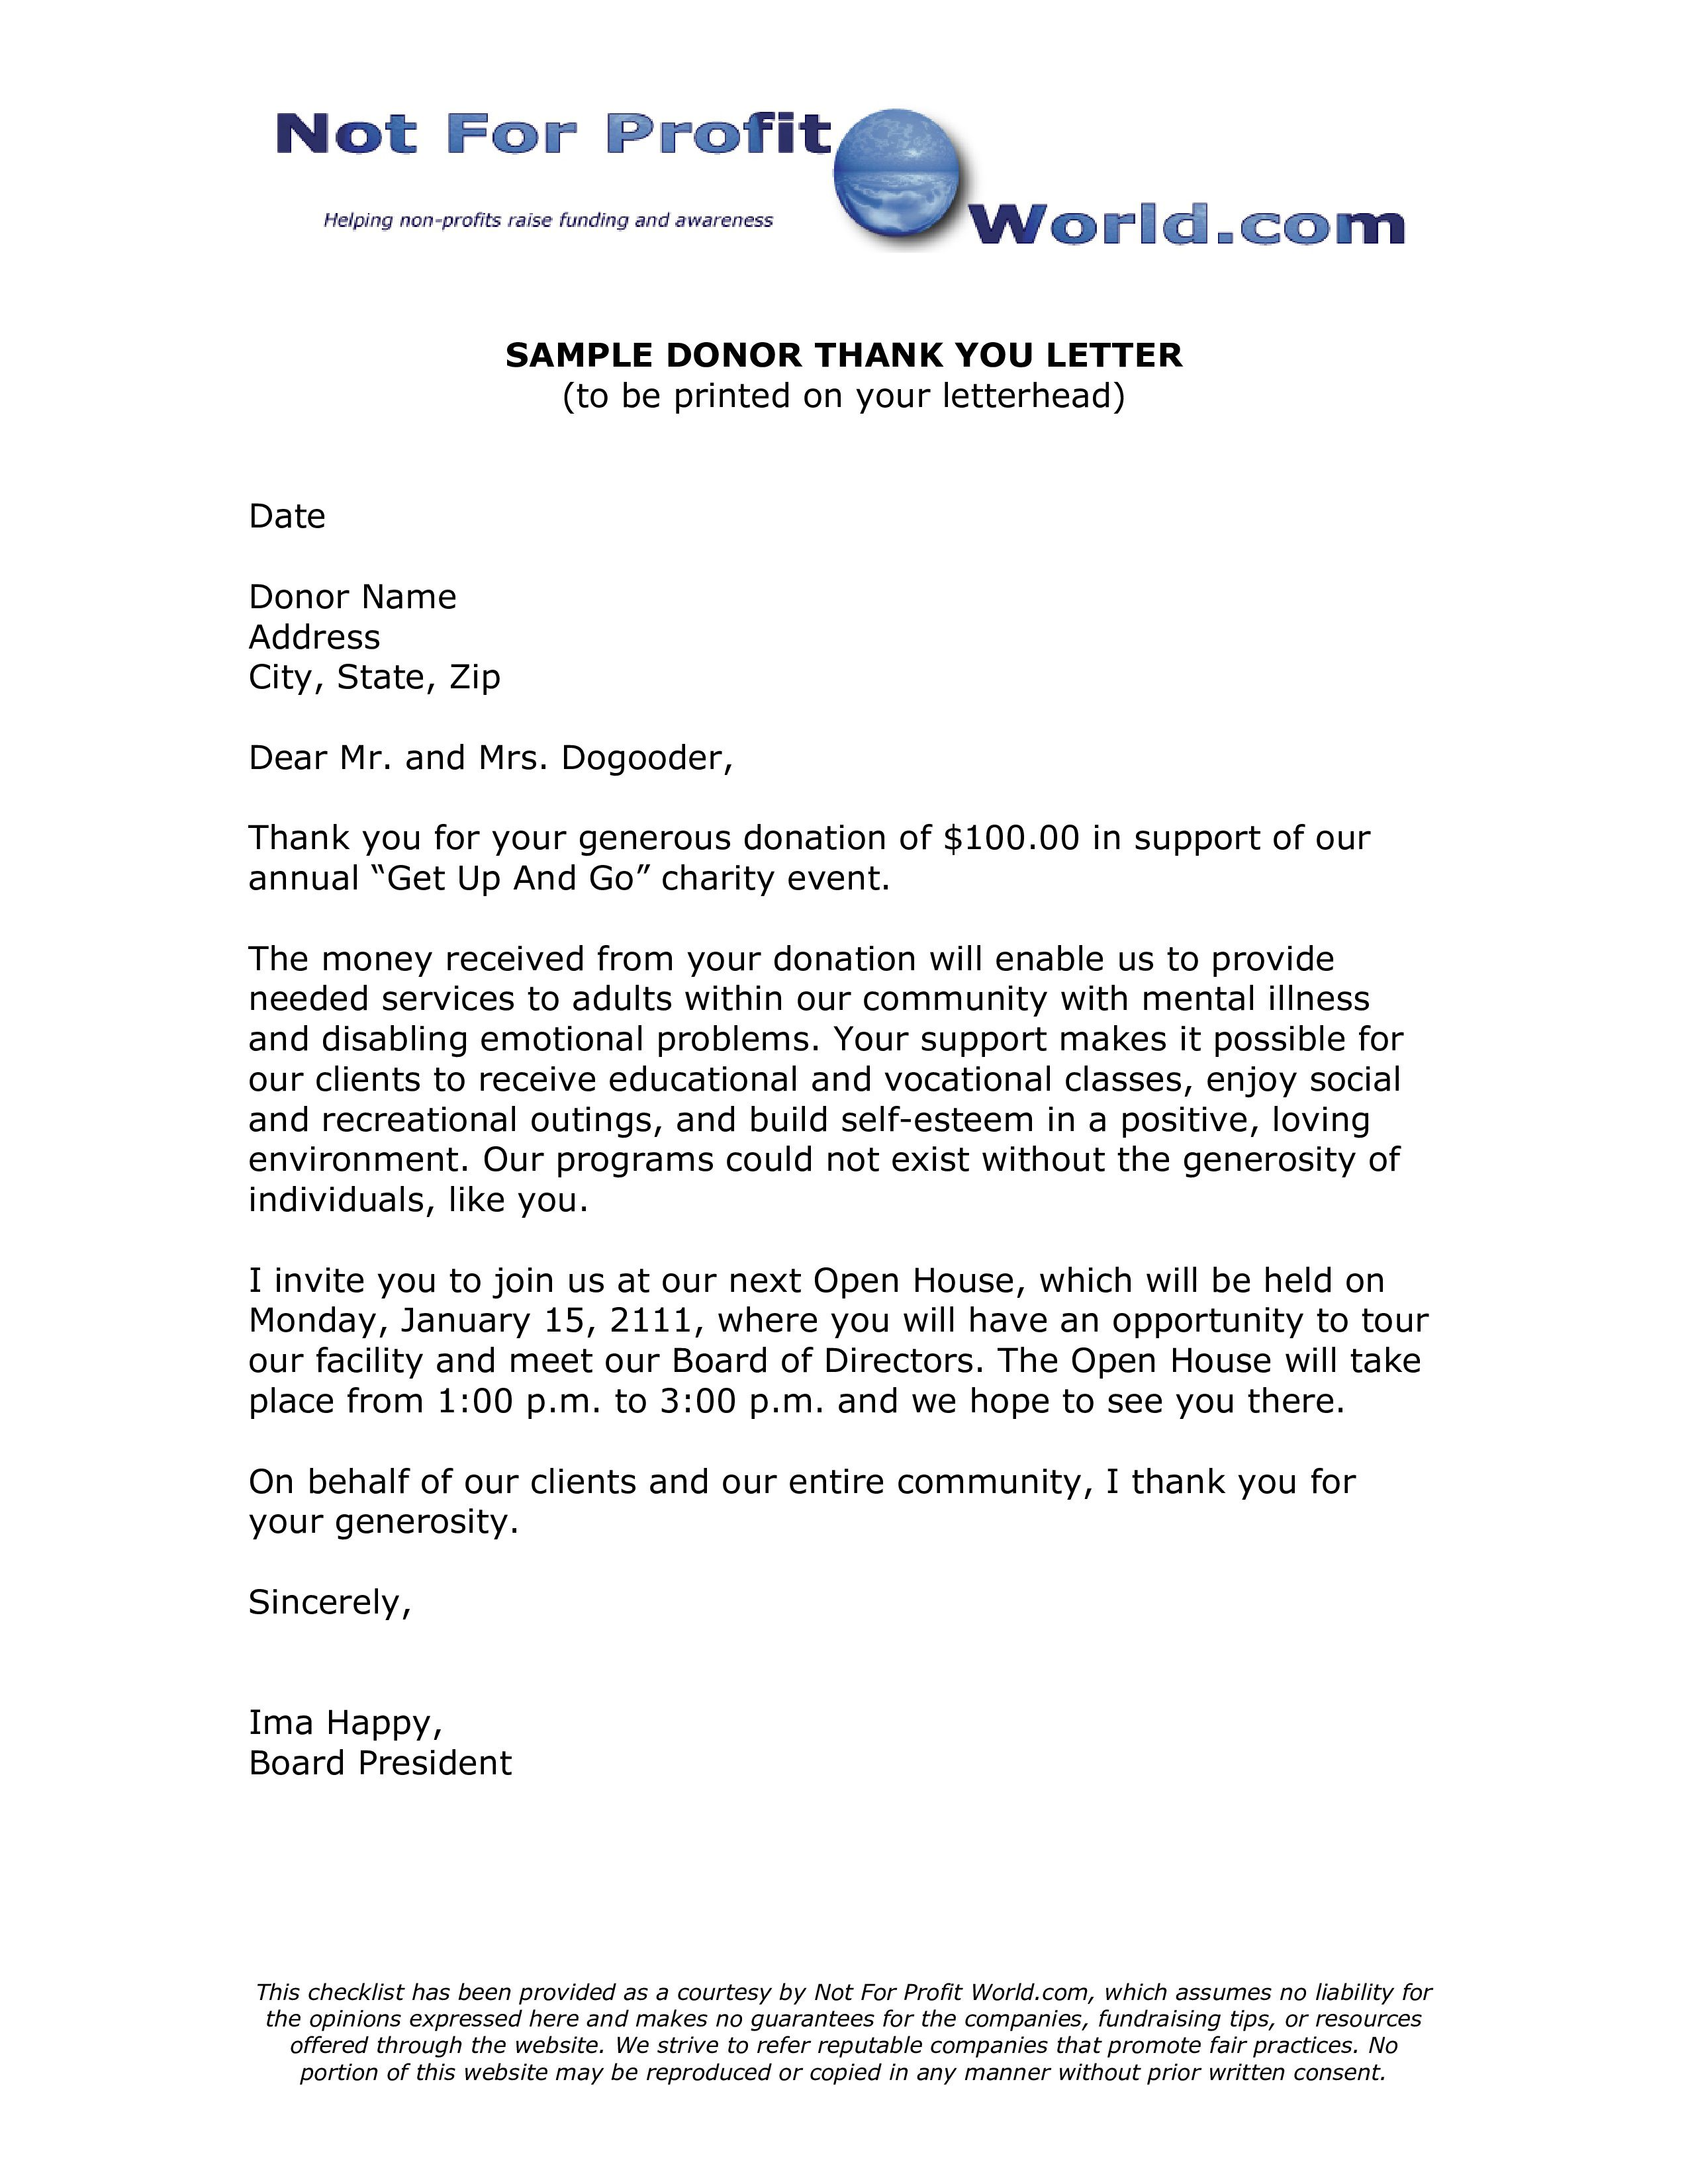 002 Incredible Donor Thank You Letter Template Sample  Donation For Church CharitableFull